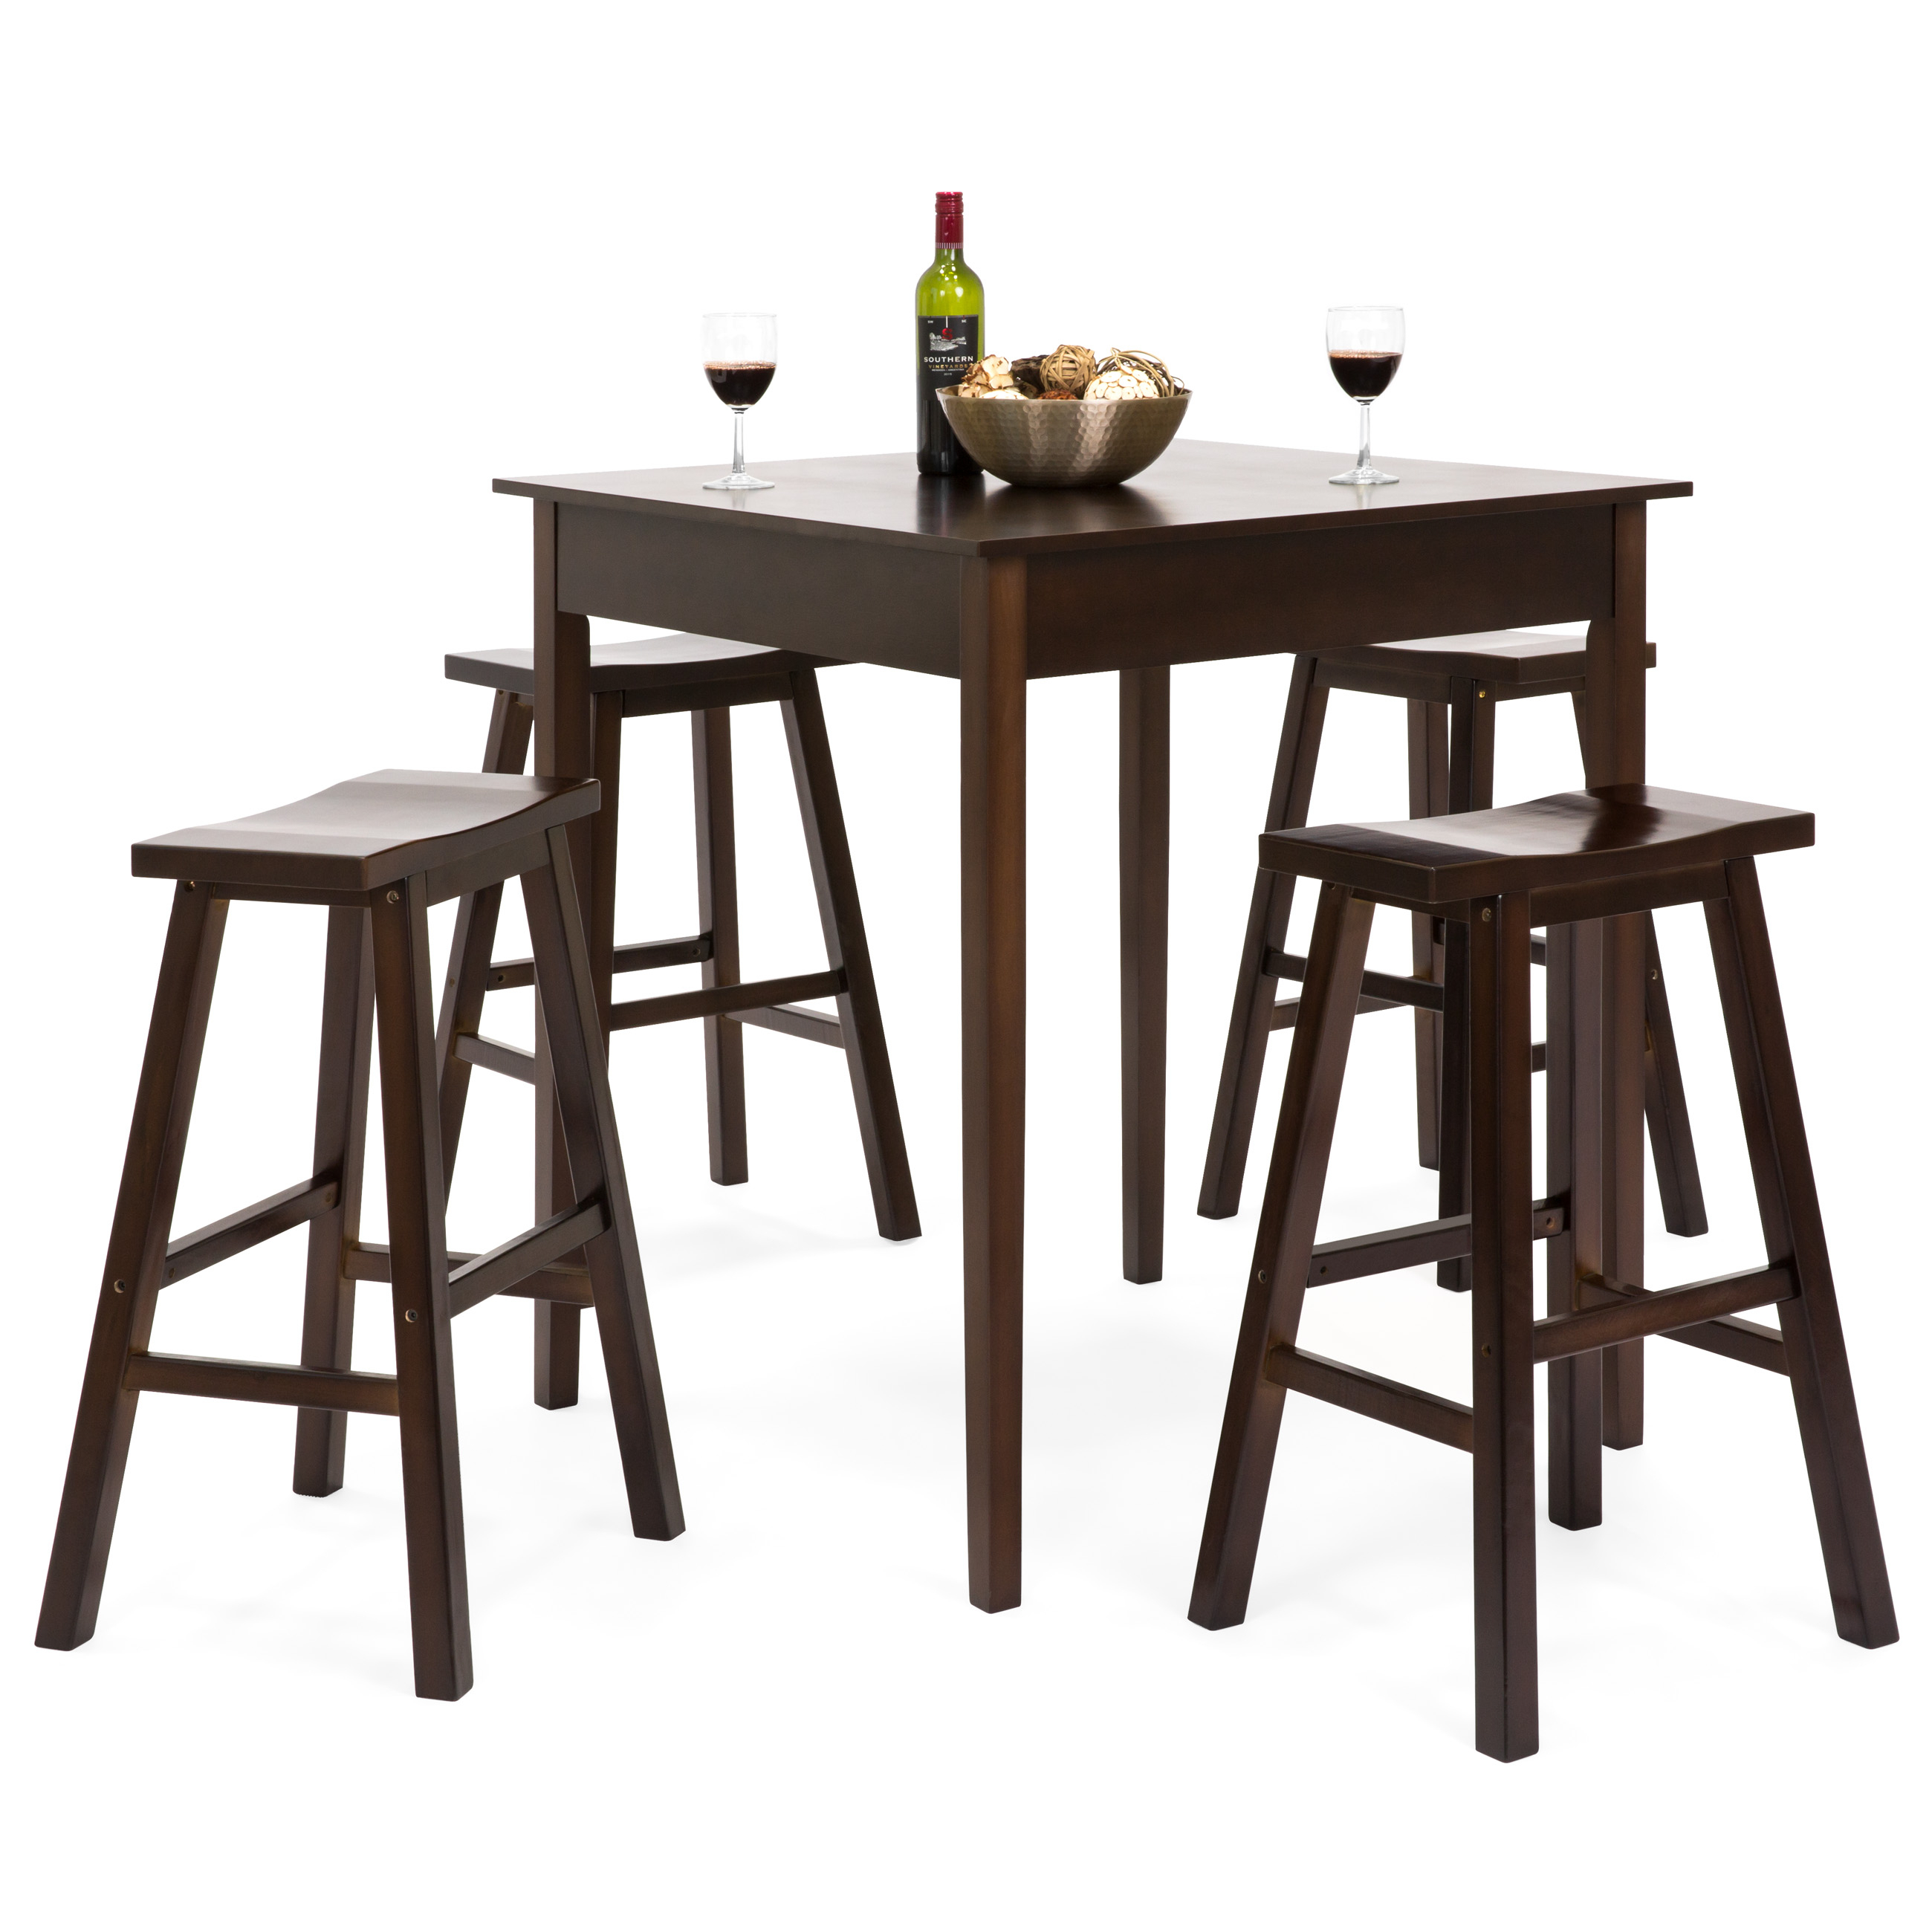 Best Choice Products 5 Piece Solid Wood Dining Pub Bar Table Set With 4 Backless Saddle Stools With Newest Biggs 5 Piece Counter Height Solid Wood Dining Sets (Set Of 5) (View 14 of 20)